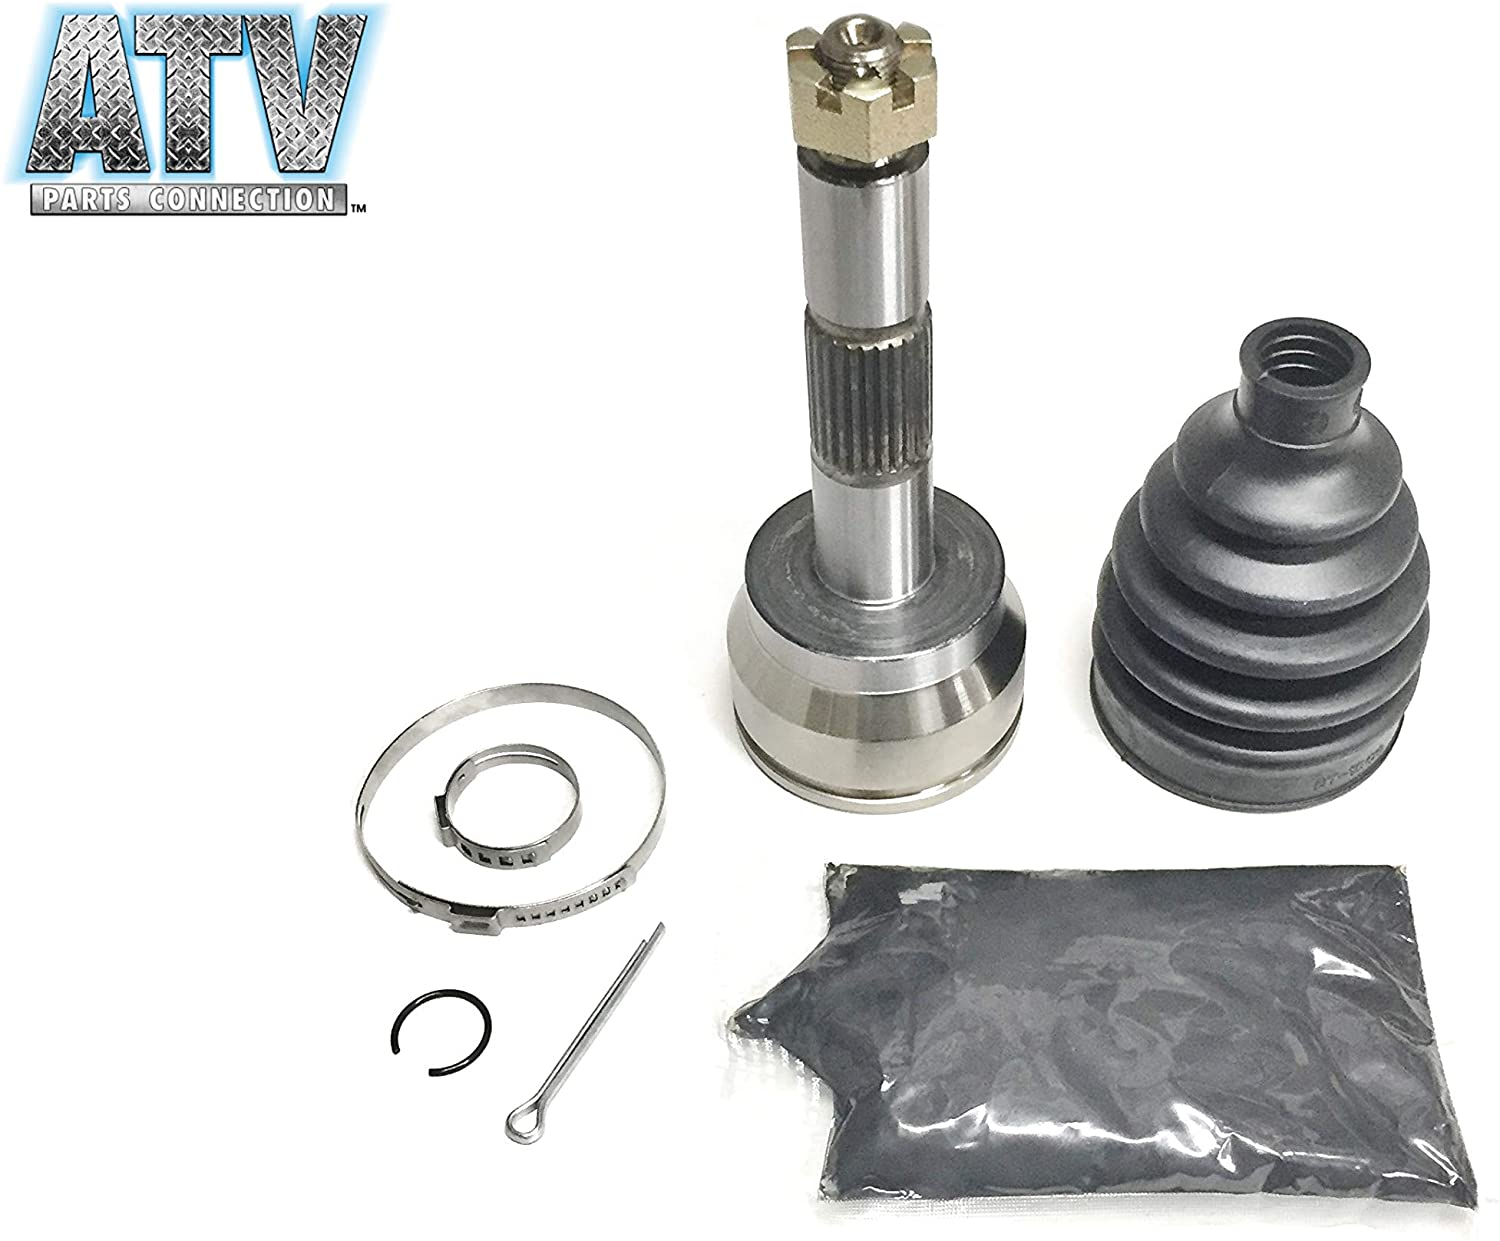 ATVPC Front Outer CV Joint Kit for Polaris ATV, fits 1380099, 1380119